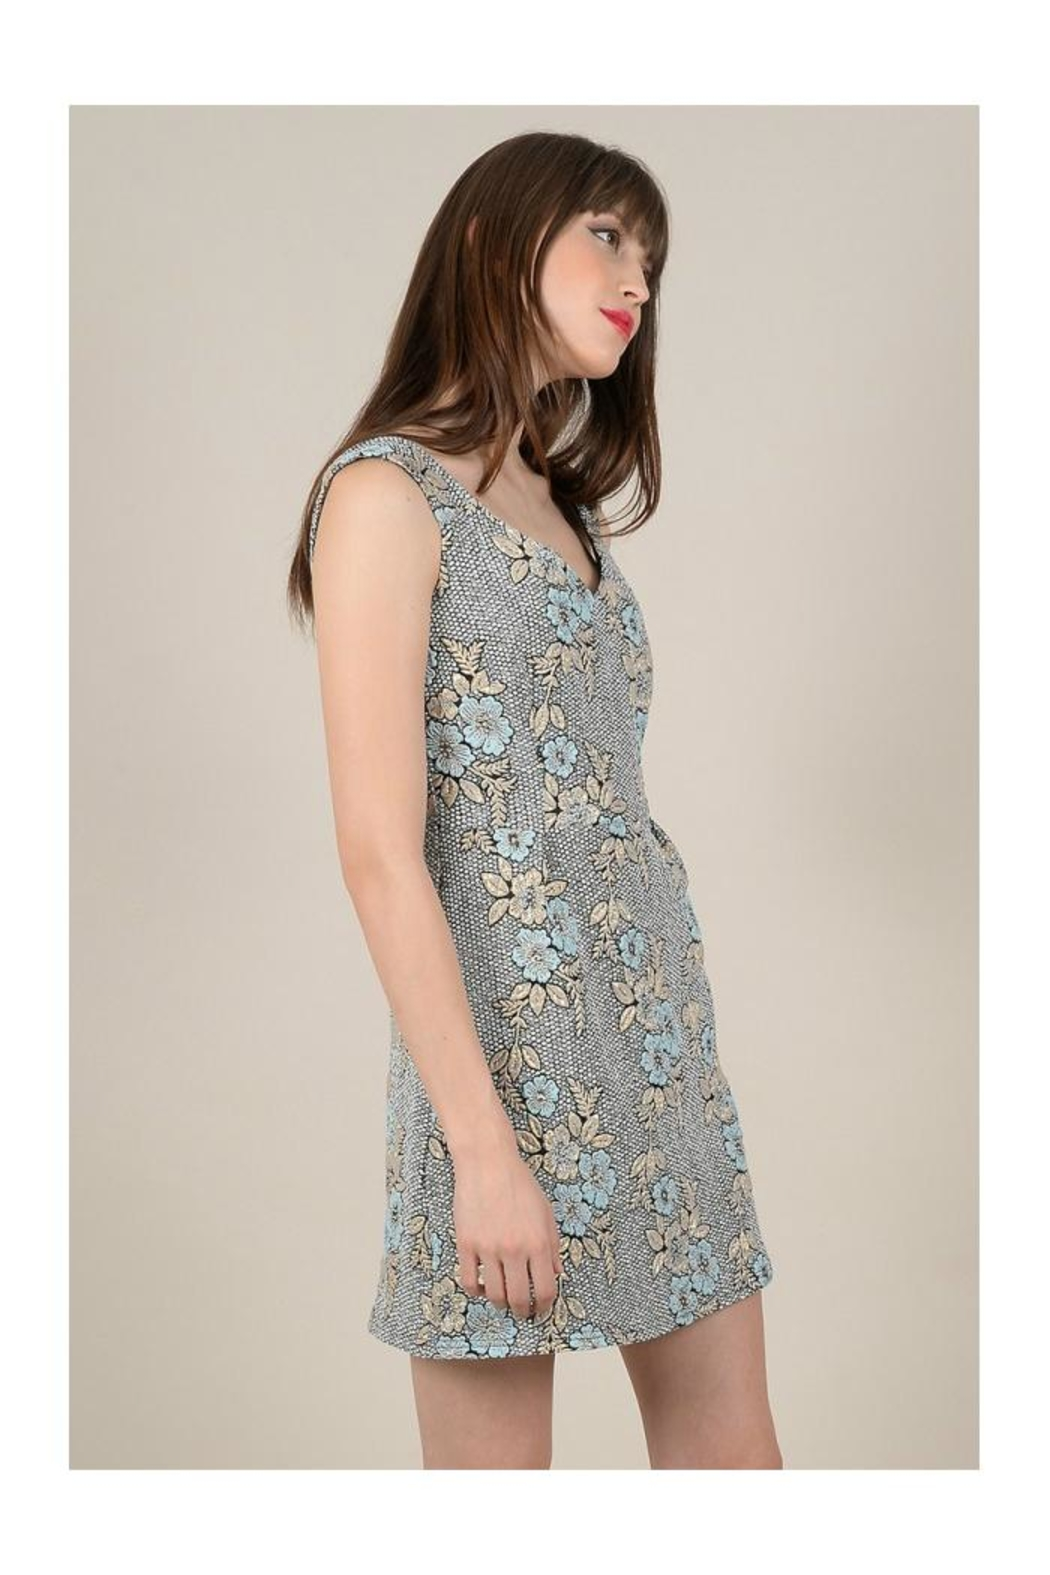 Molly Bracken Floral Print Dress - Front Full Image